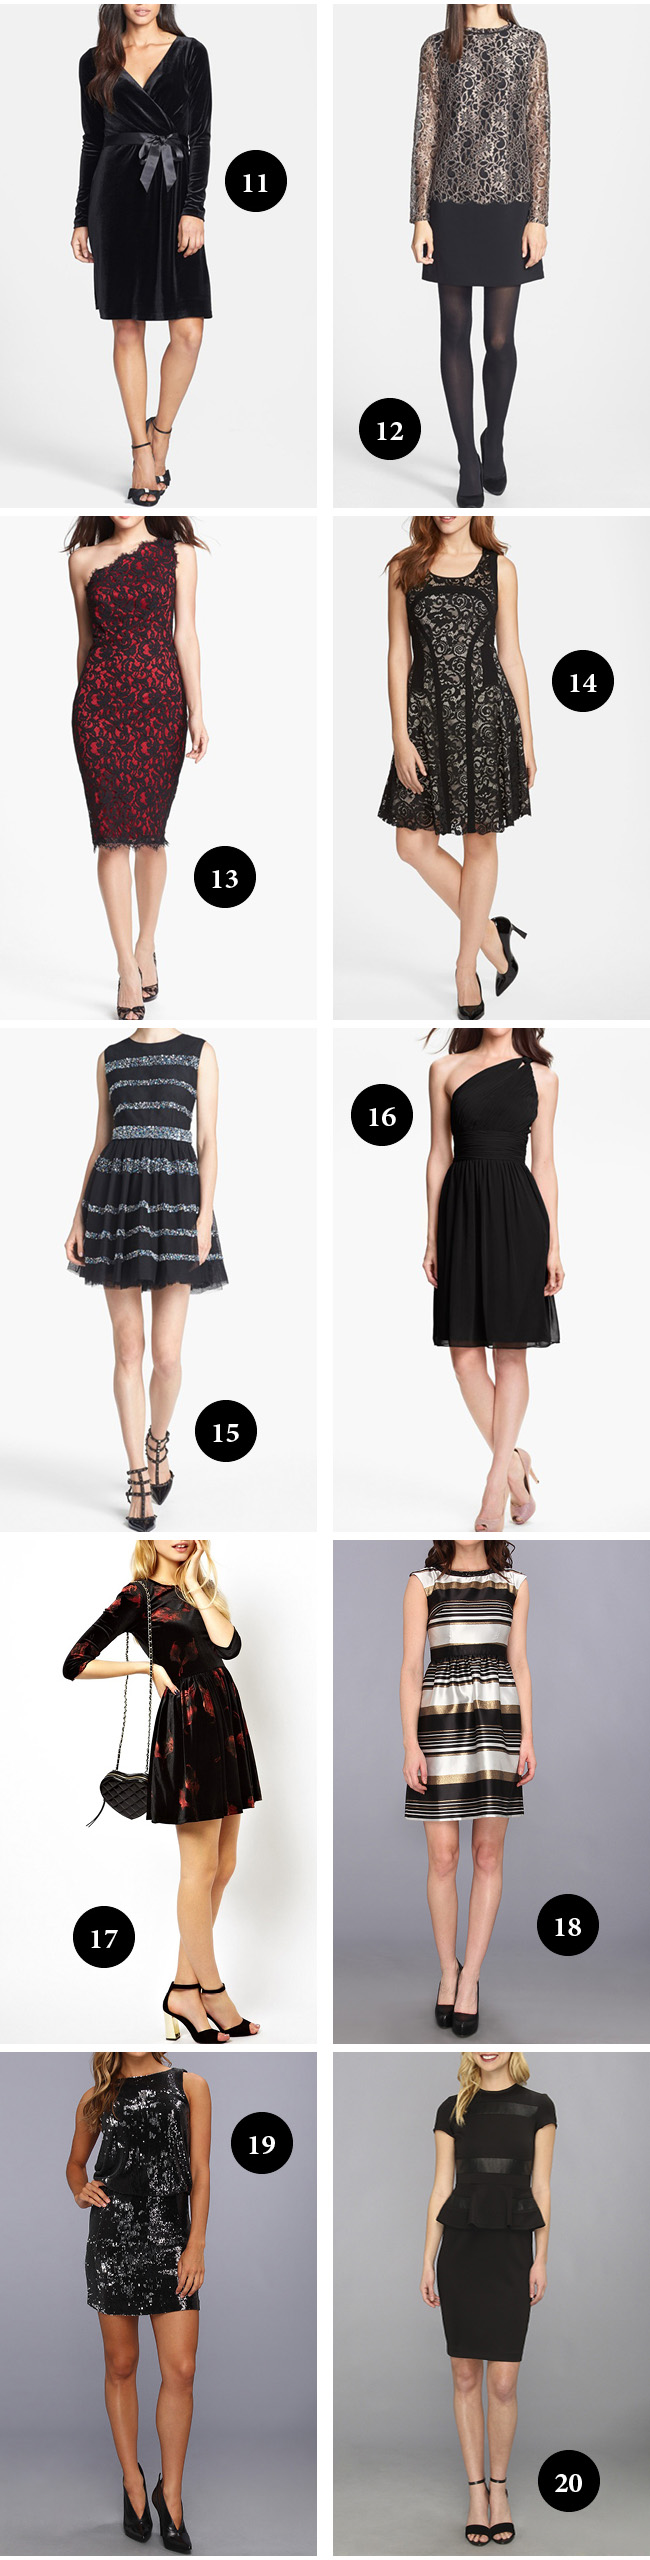 20 Fabulous Cocktail Dresses We Love Fashion Cleaners